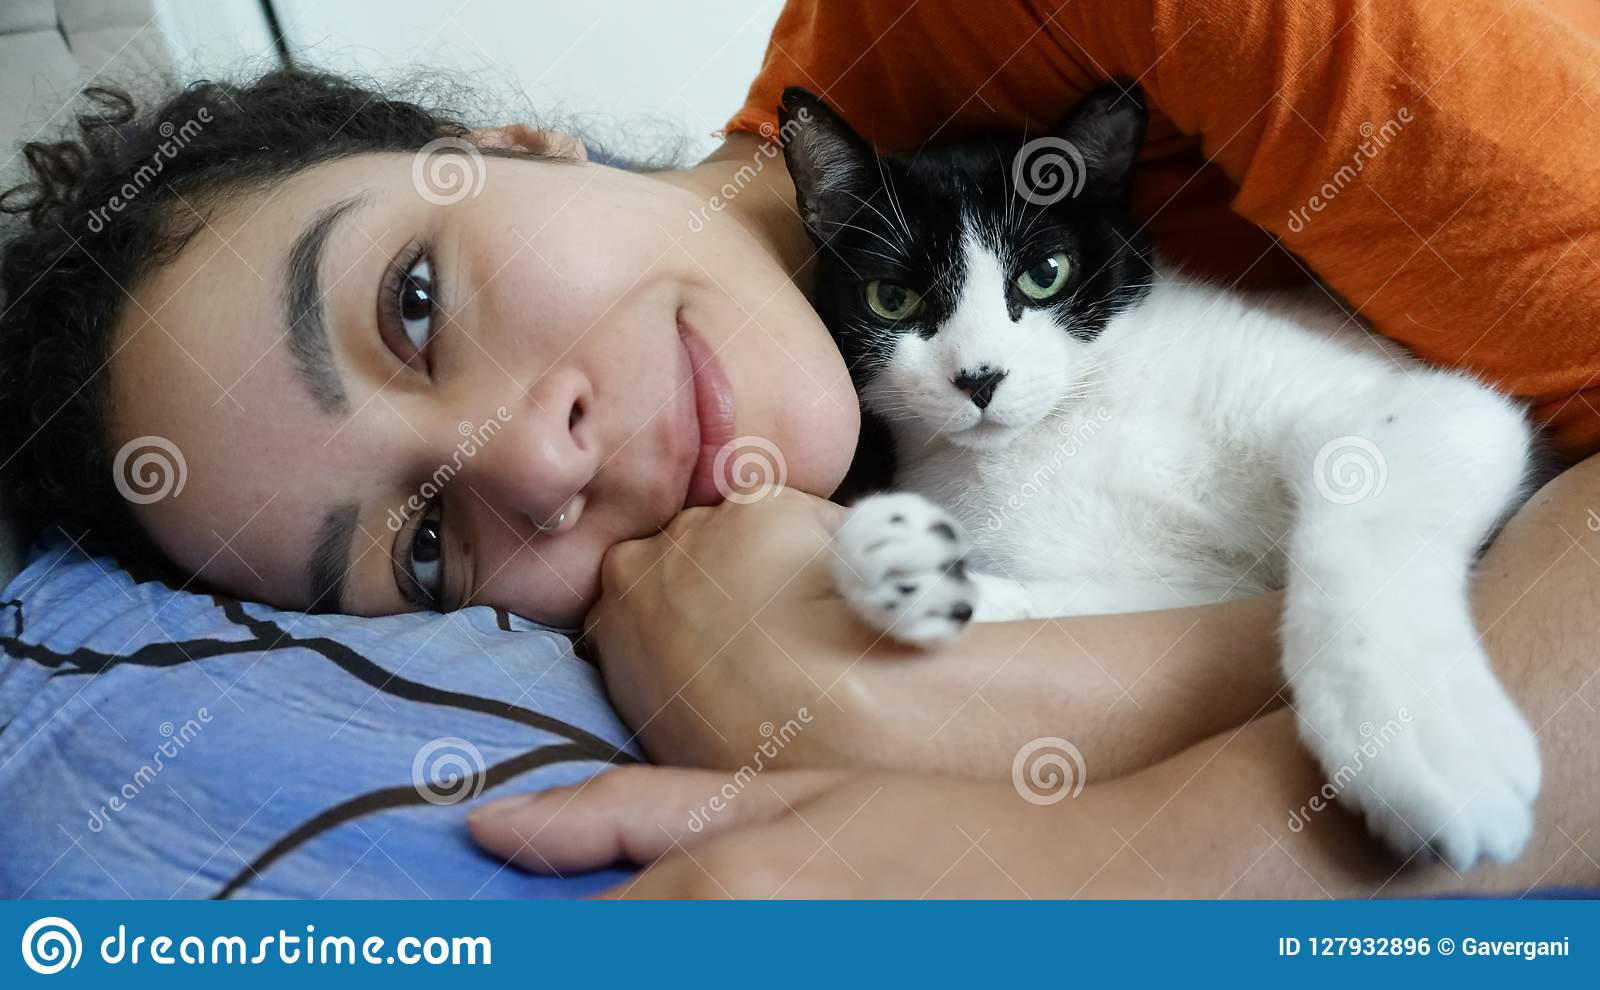 Owner and pet lie on the bed.